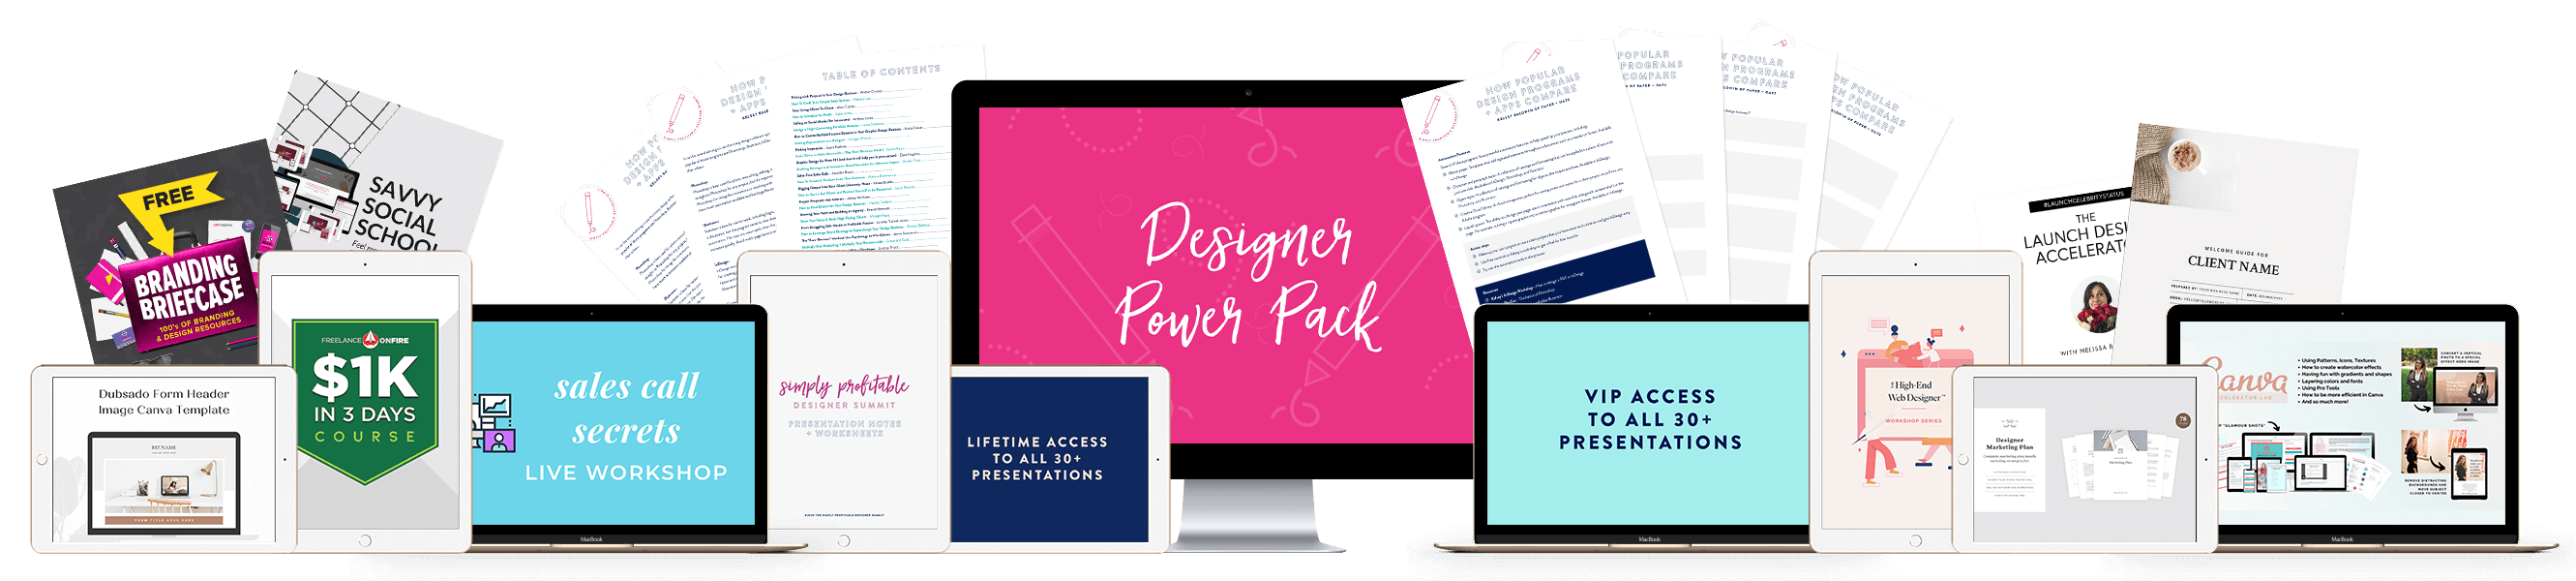 Designer Power Pack